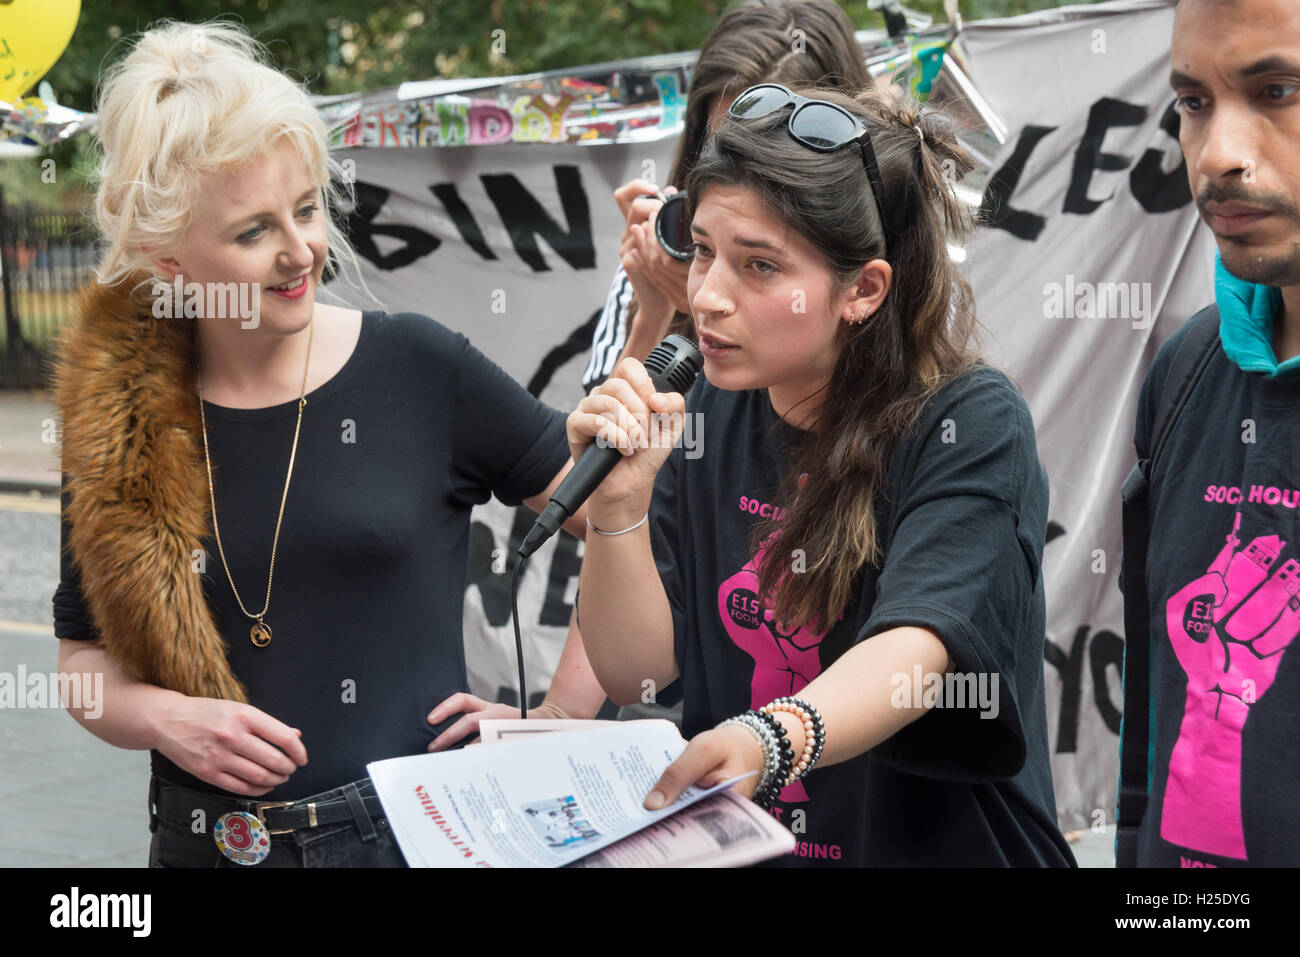 London, UK. 24th September 2016. A short rally at the end of the party by housing campaigners Focus E15 at the weekly - Stock Image